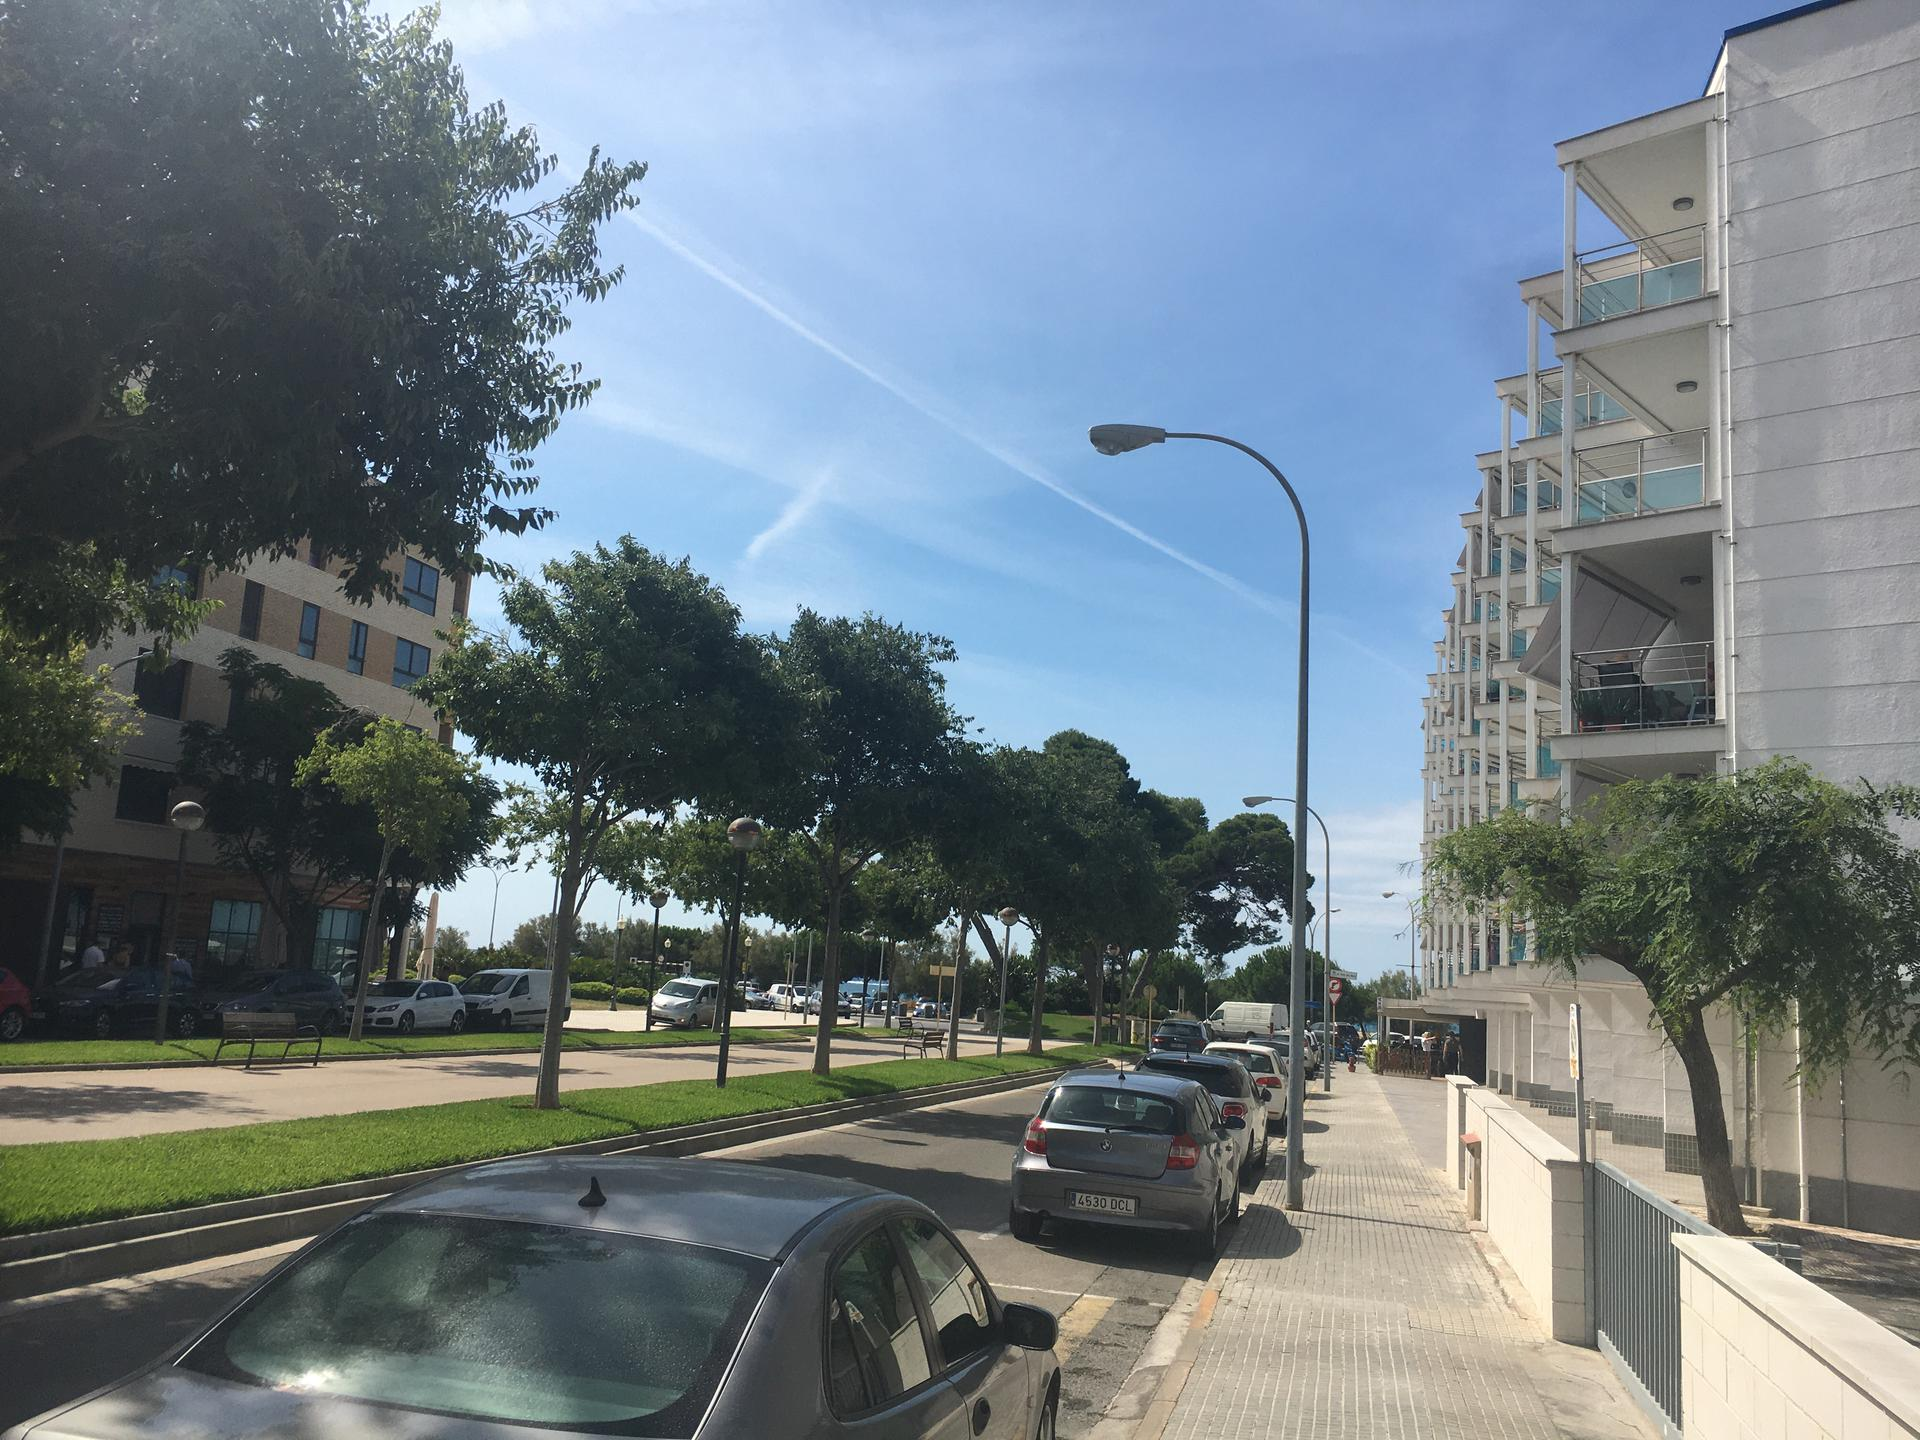 Parking -                               Cambrils -                               0 camere -                               0 persone